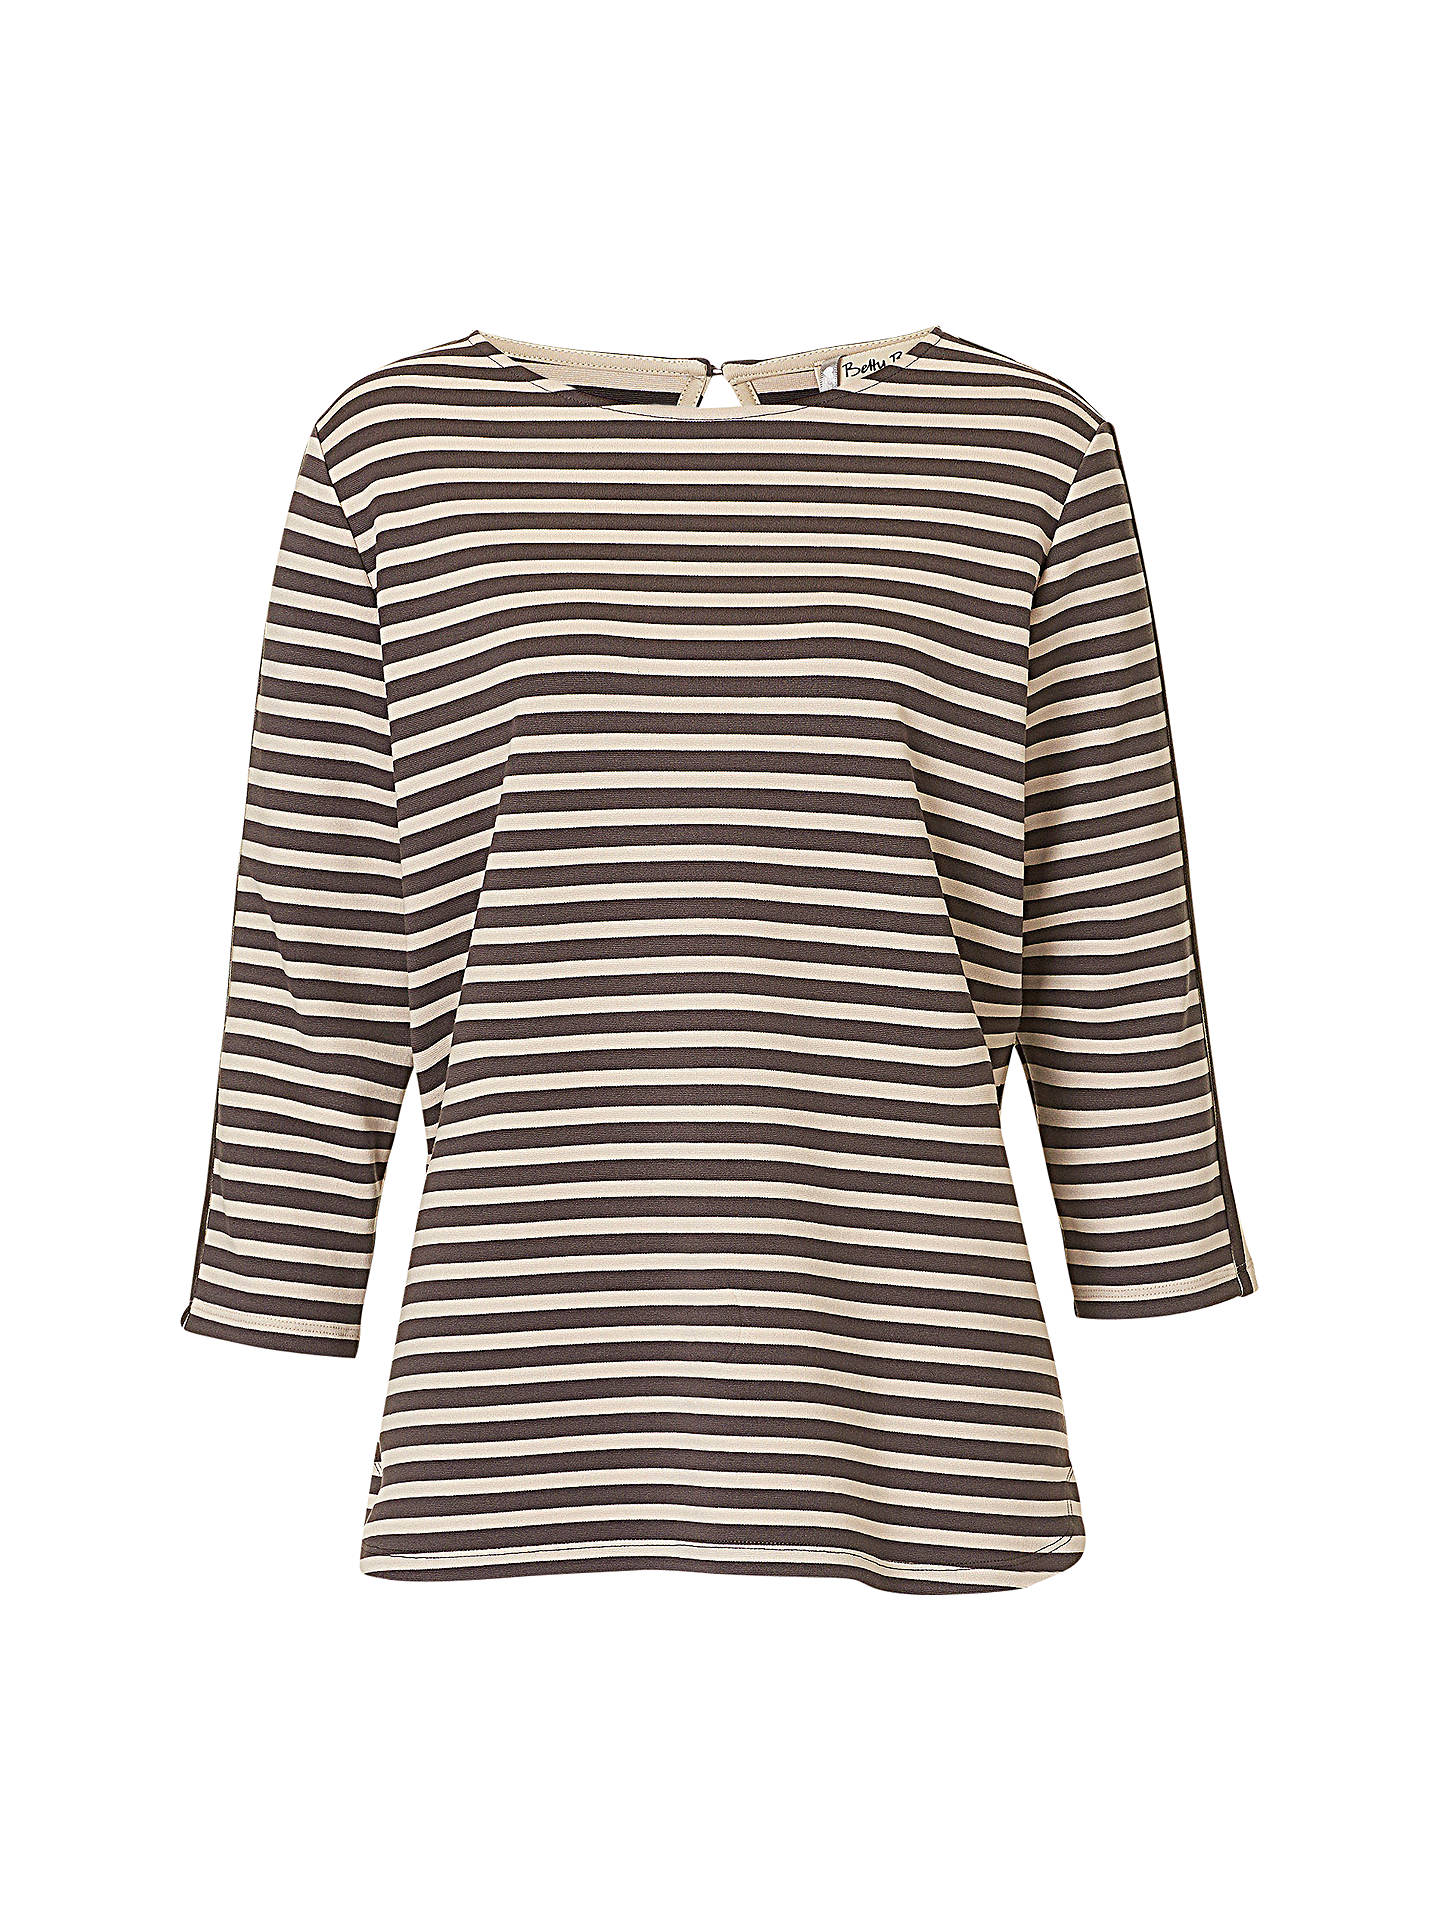 BuyBetty Barclay Striped Top, Grey/Beige, 8 Online at johnlewis.com